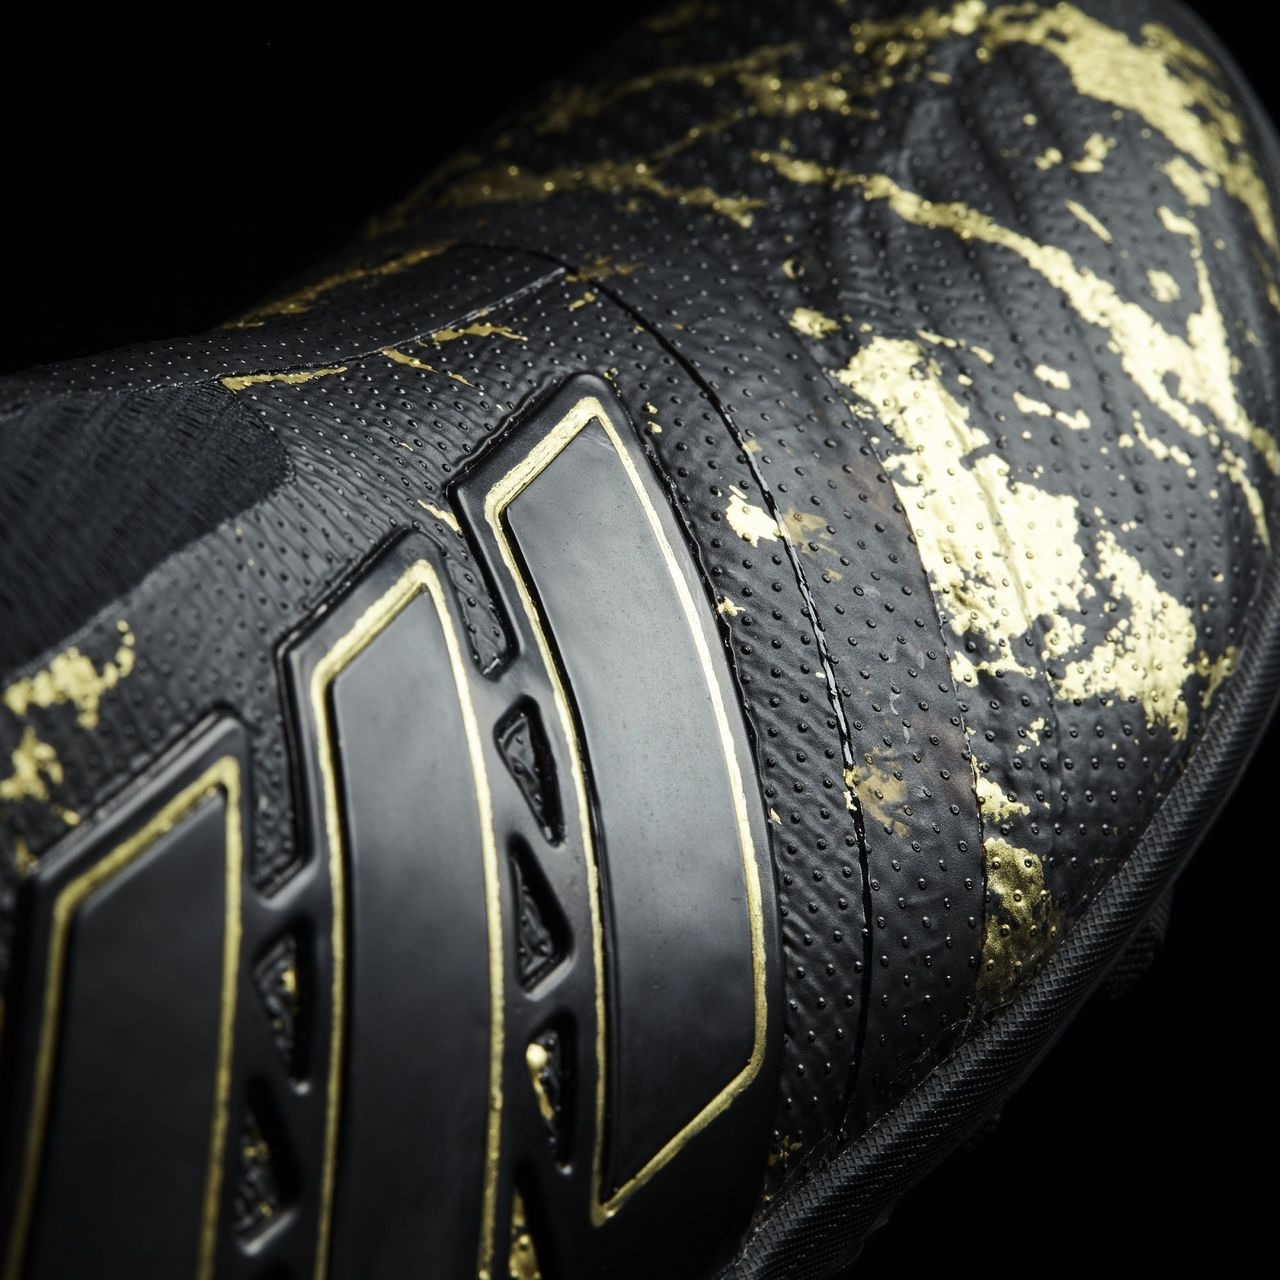 95a03f0382e1 ... Click to enlarge image  adidas_pp_ace_tango_17_purecontrol_turf_boots_core_black_matte_gold_g.jpg  ...